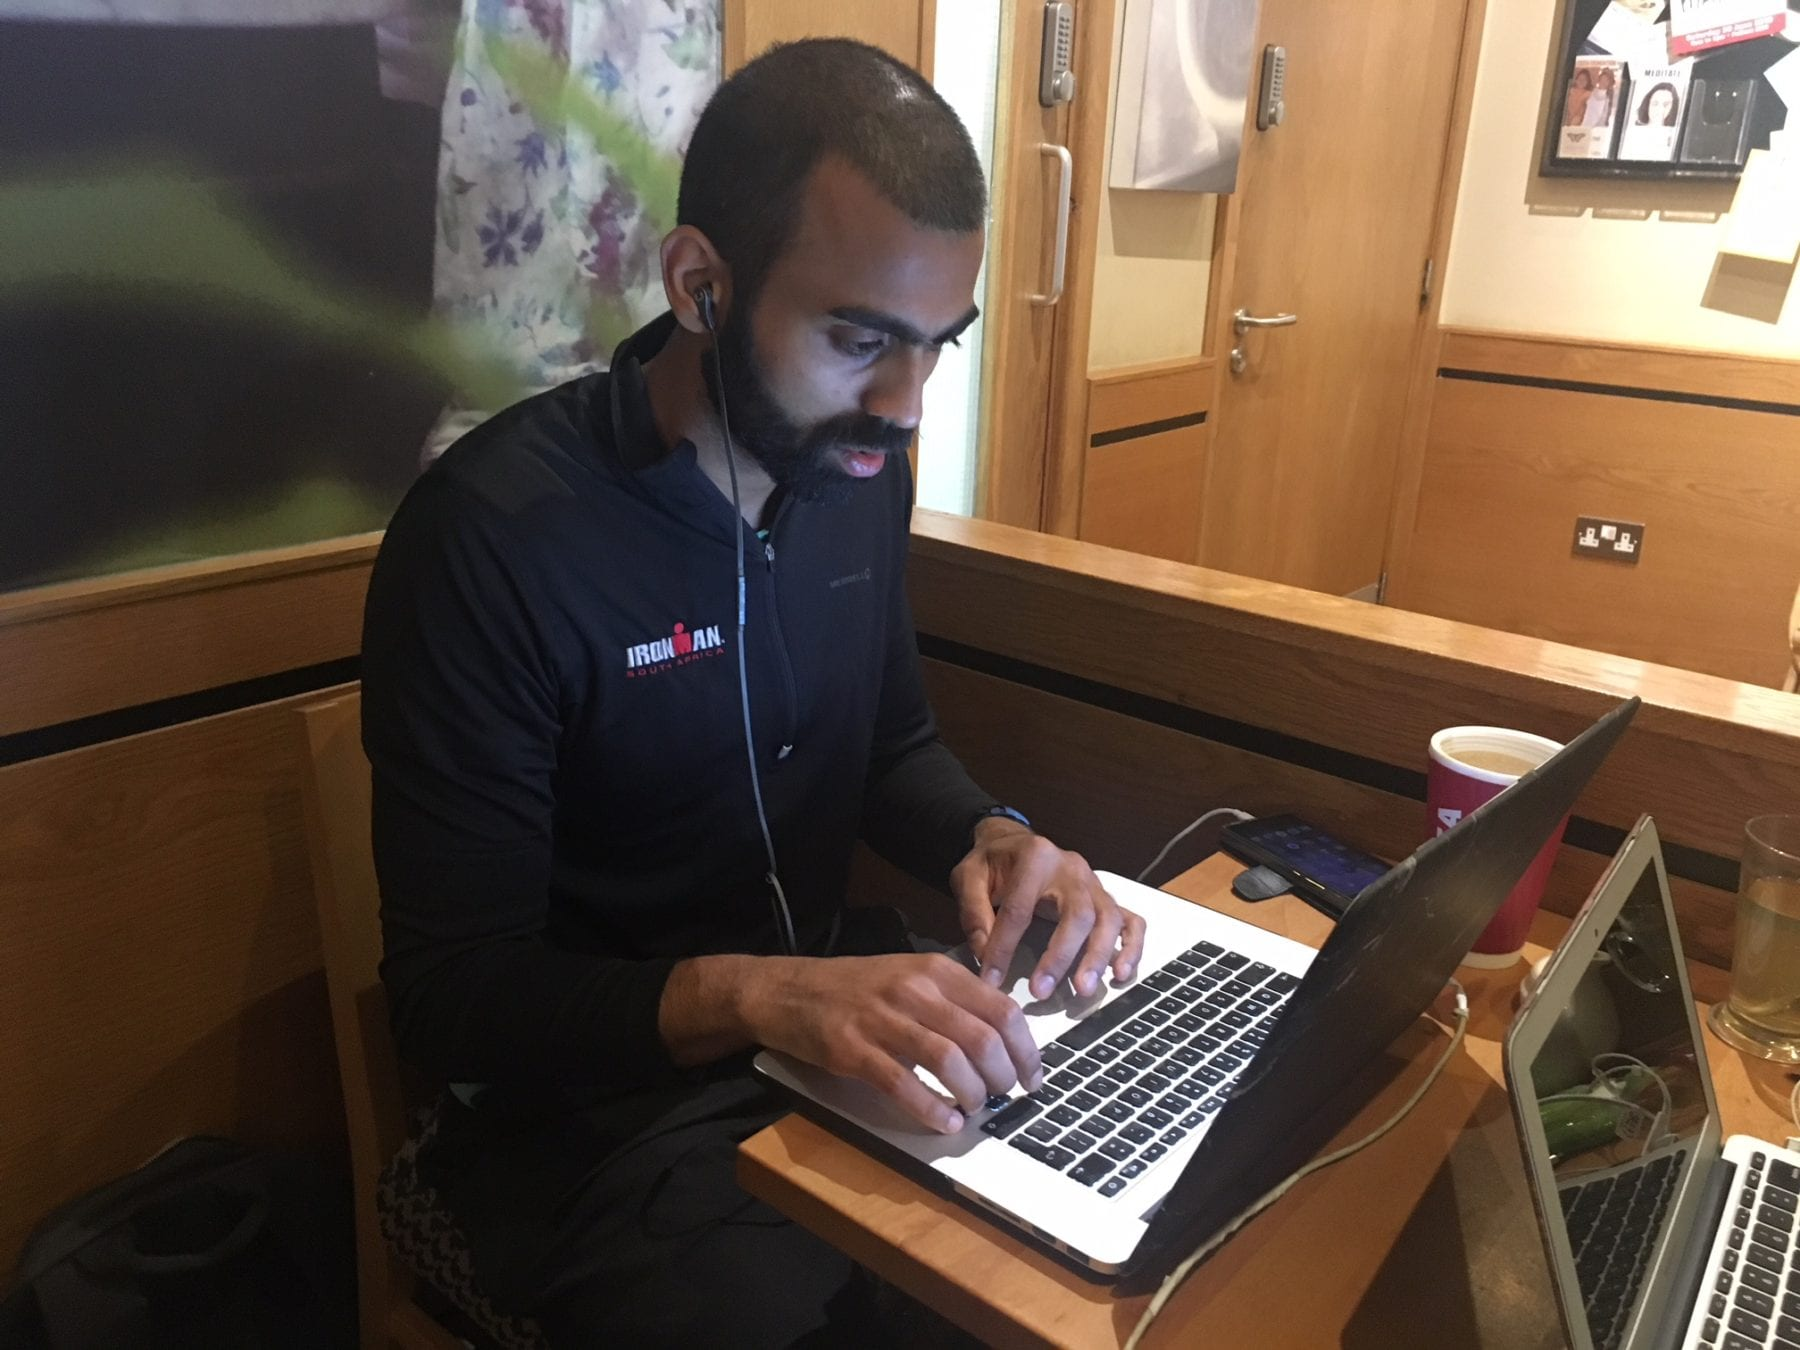 Deepak Shukla working in Costa coffee Cafe